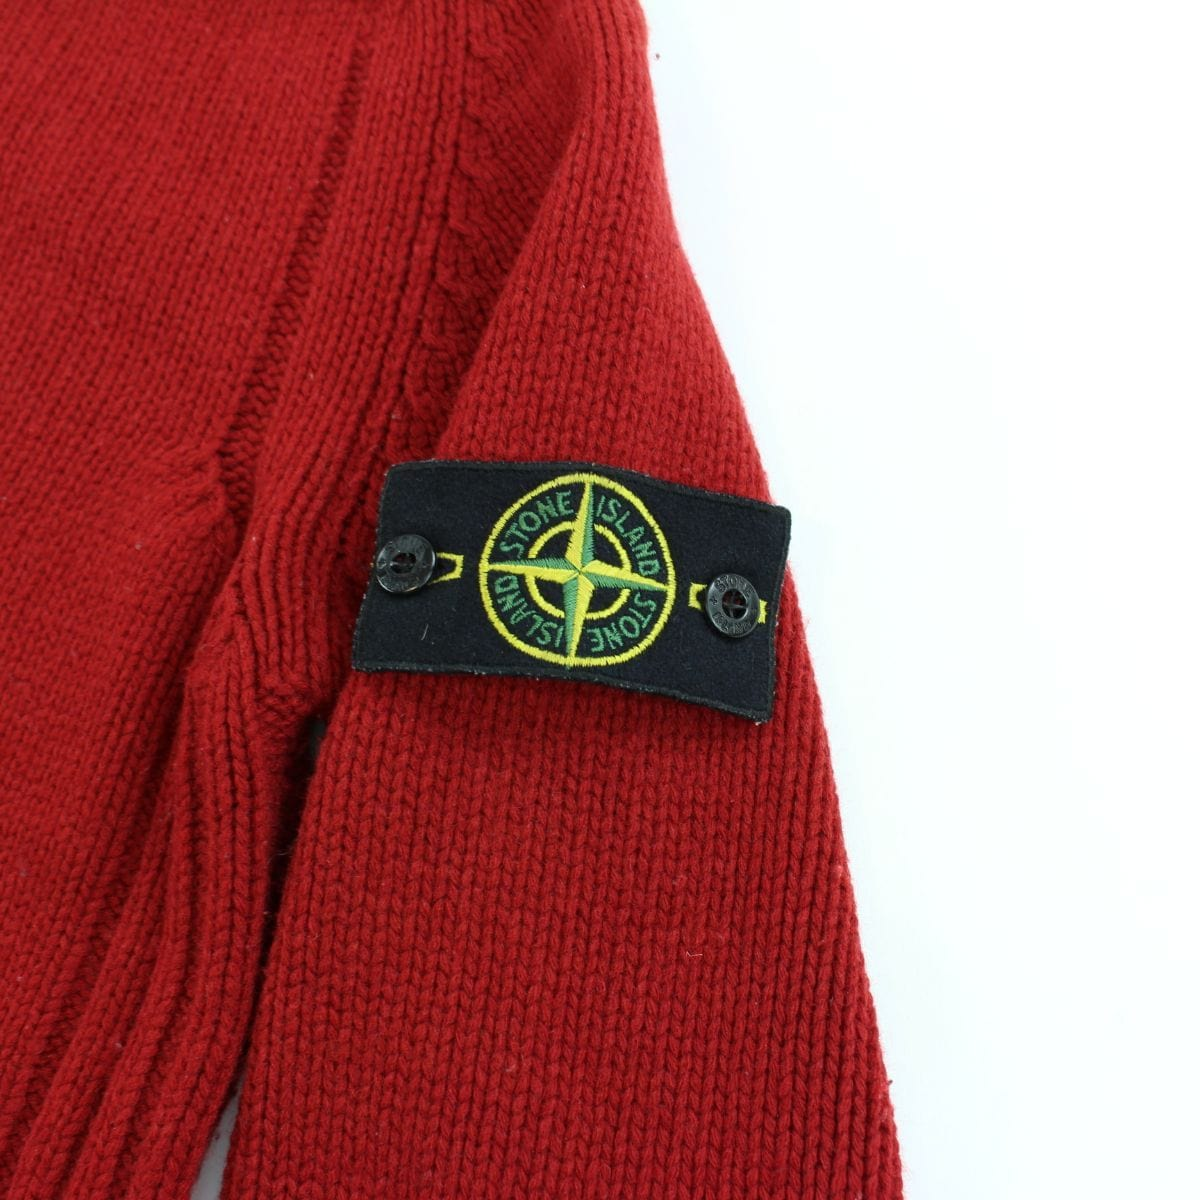 Stone Island AW 2004 Quarter Zip Knitted Jumper Red - SaruGeneral